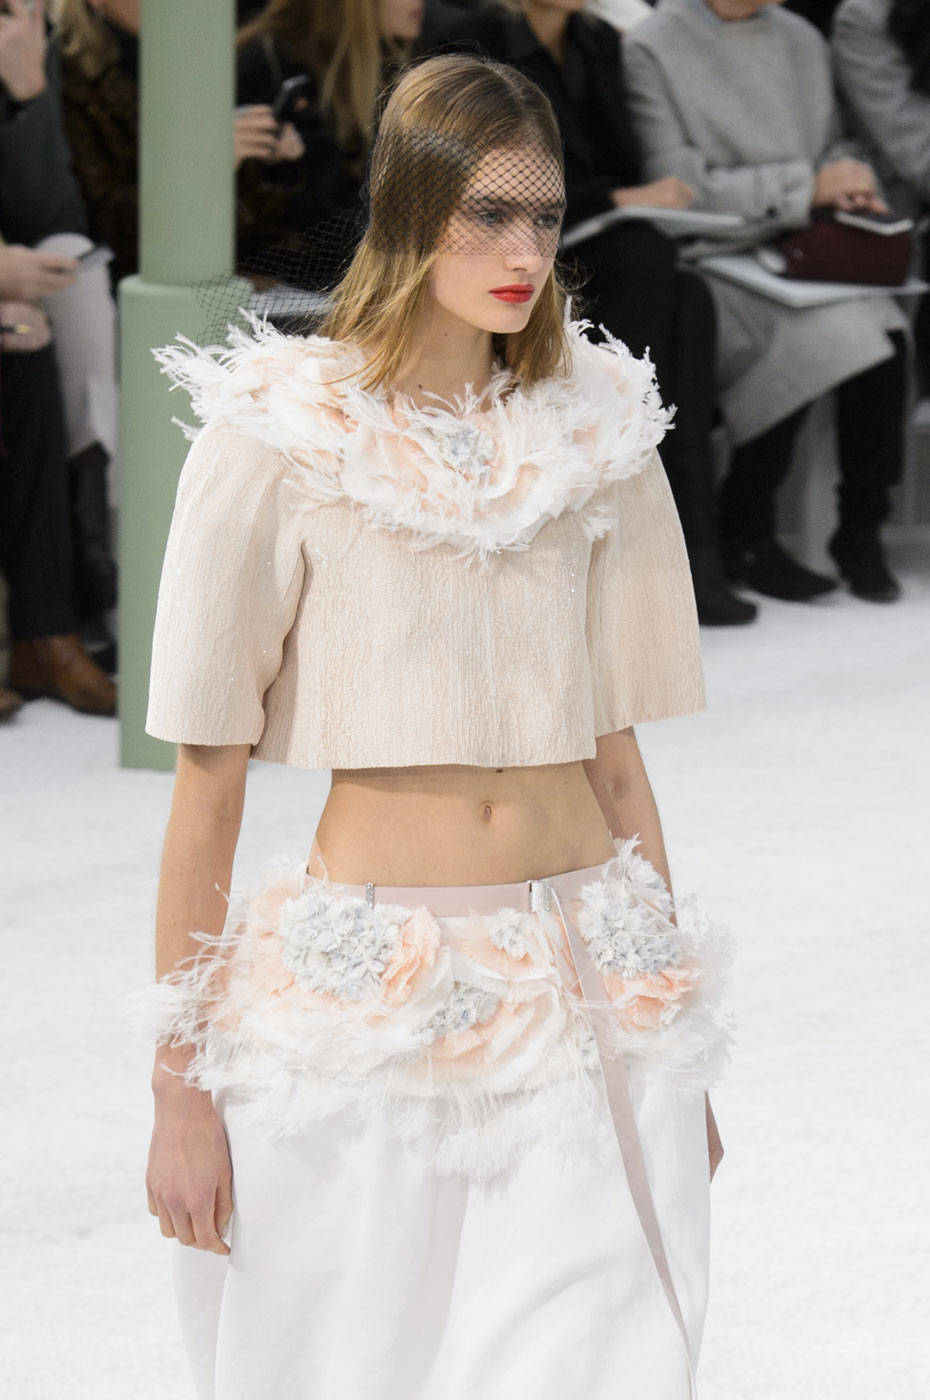 Chanel-fashion-runway-show-haute-couture-paris-spring-summer-2015-the-impression-142